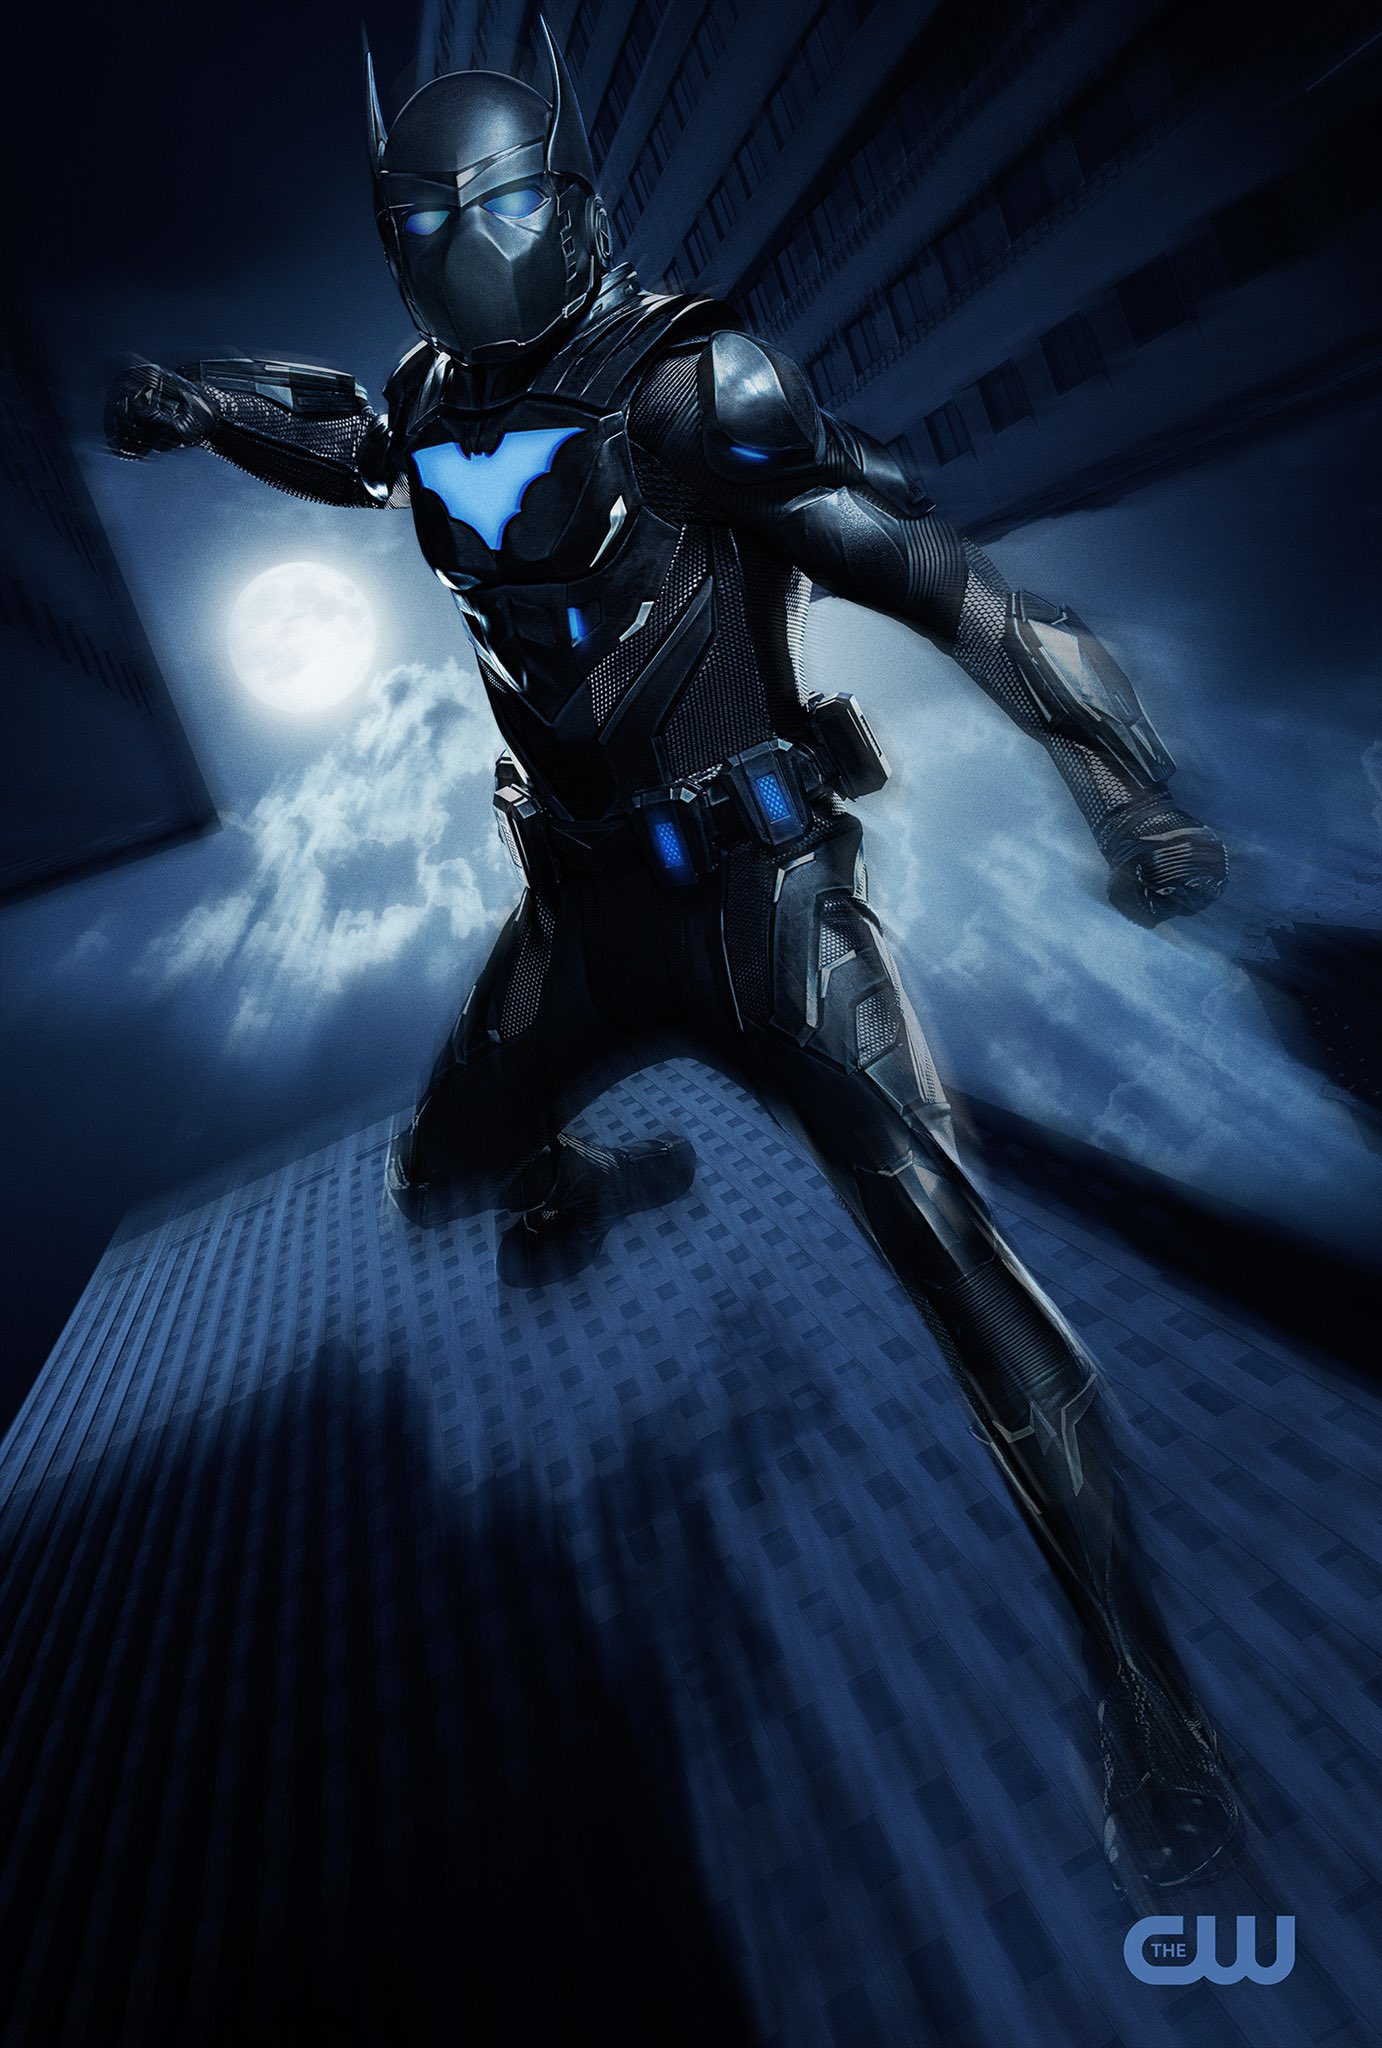 Batwoman star Camrus Johnson is suiting up as Batwing in season 2 finale 15